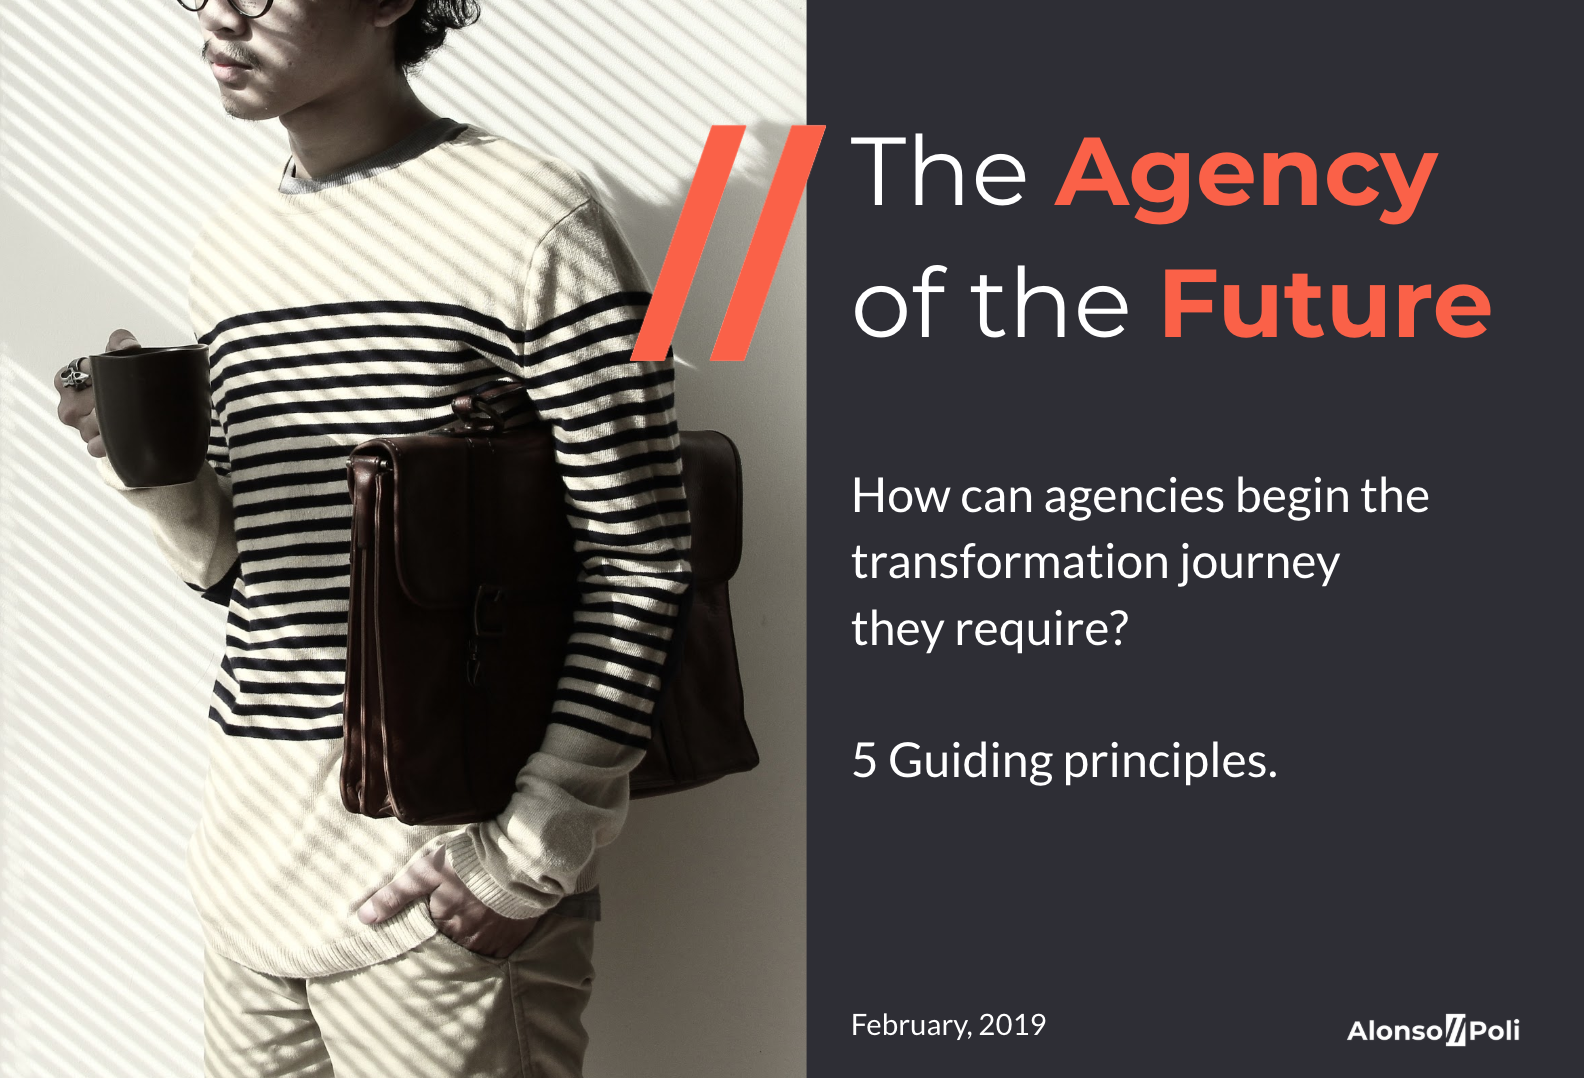 Agency_of_the_Future_Alonso_Poli